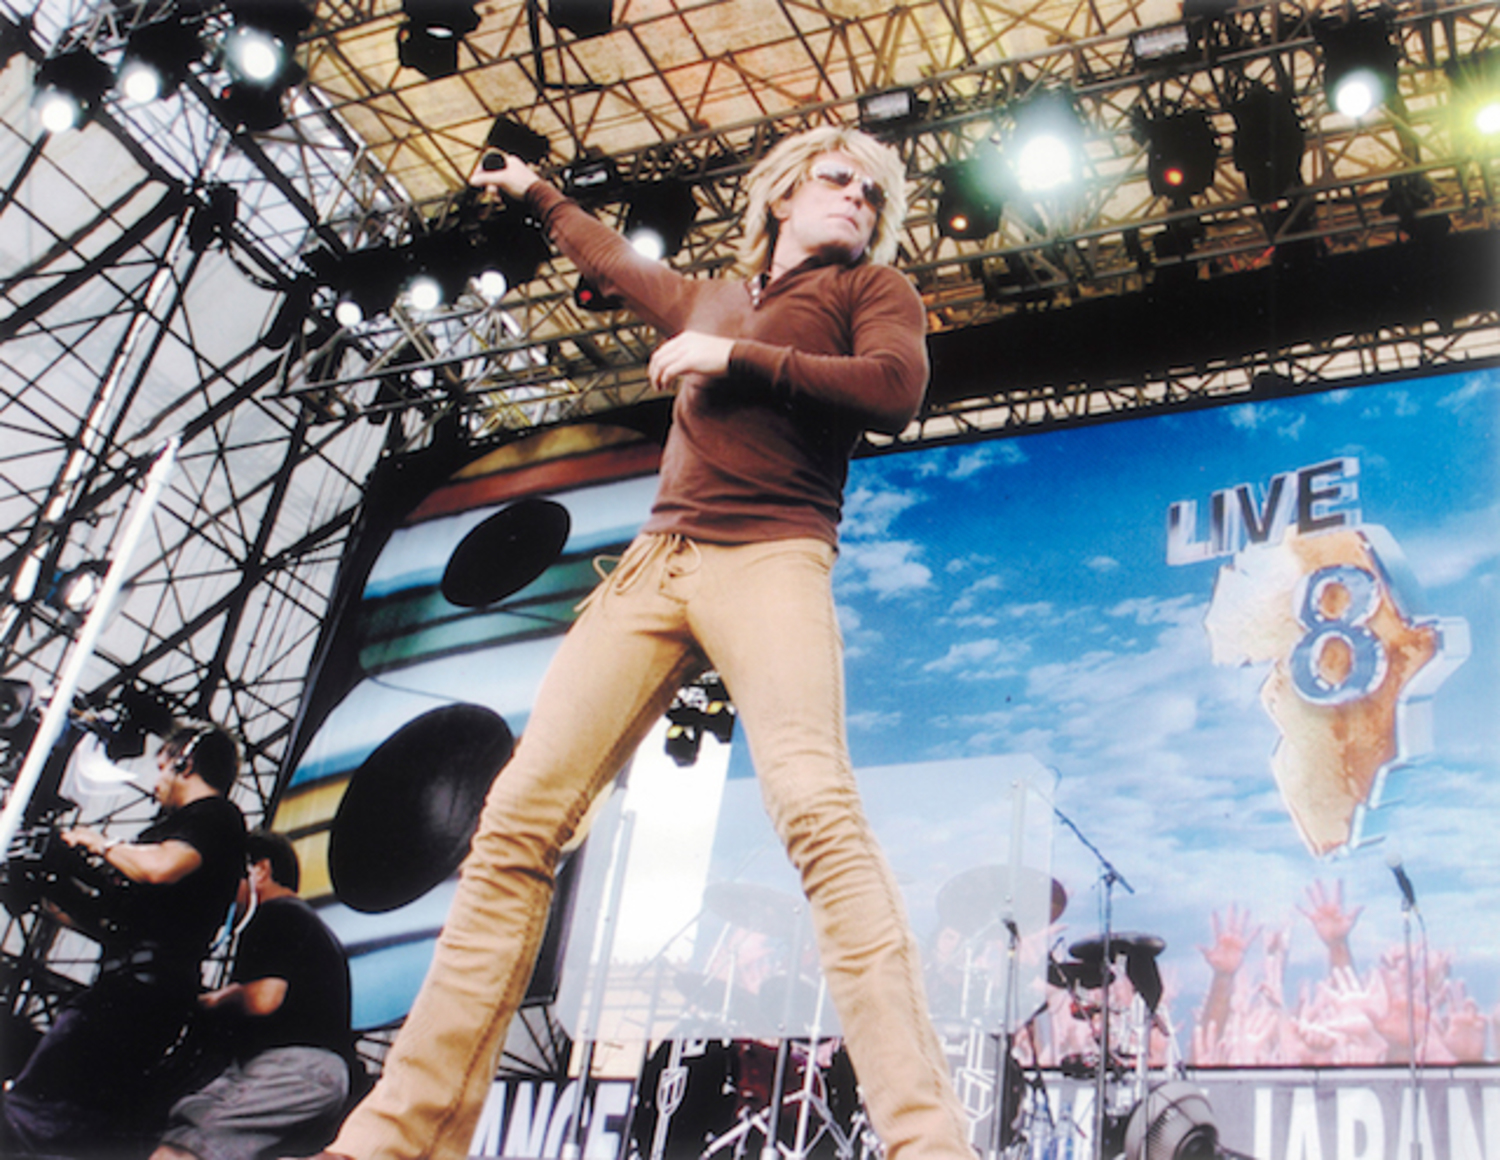 Brown Leatherpants Custom Made and Worn at the Live8 Benefit Concert by Jon Bon Jovi